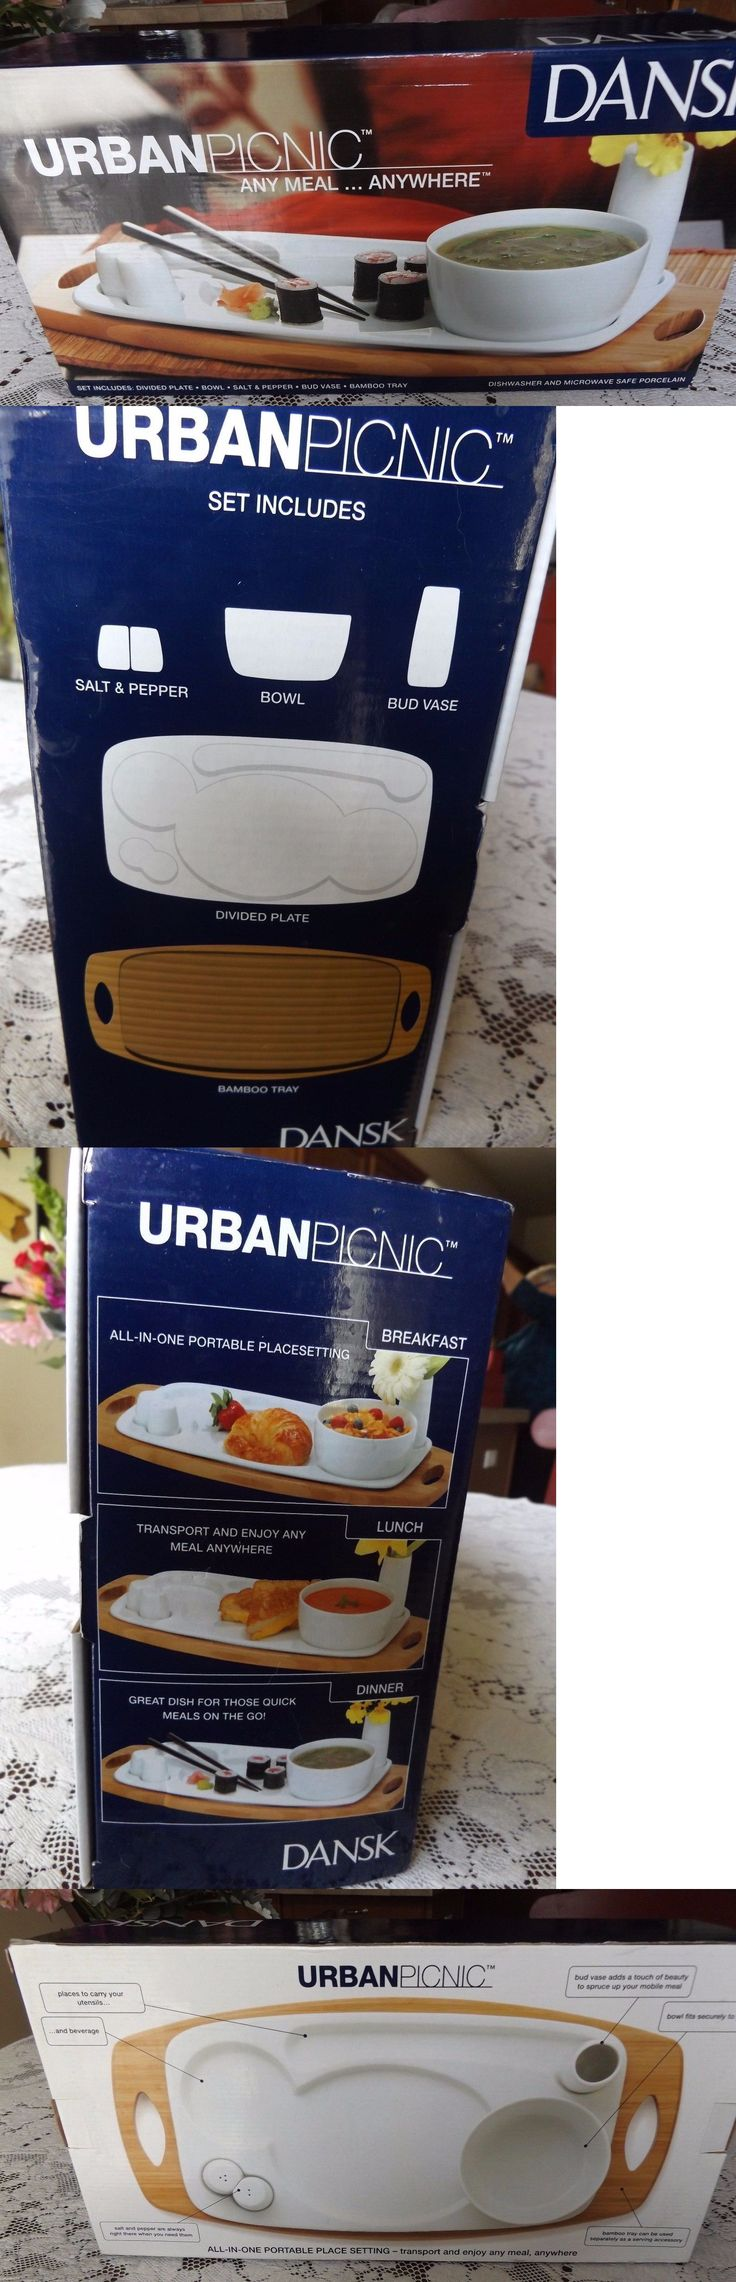 Patio and Picnic Ware 79692: Dansk Urban Picnic Cafe Blanc Any Meal Anywhere New In Box -> BUY IT NOW ONLY: $34 on eBay!